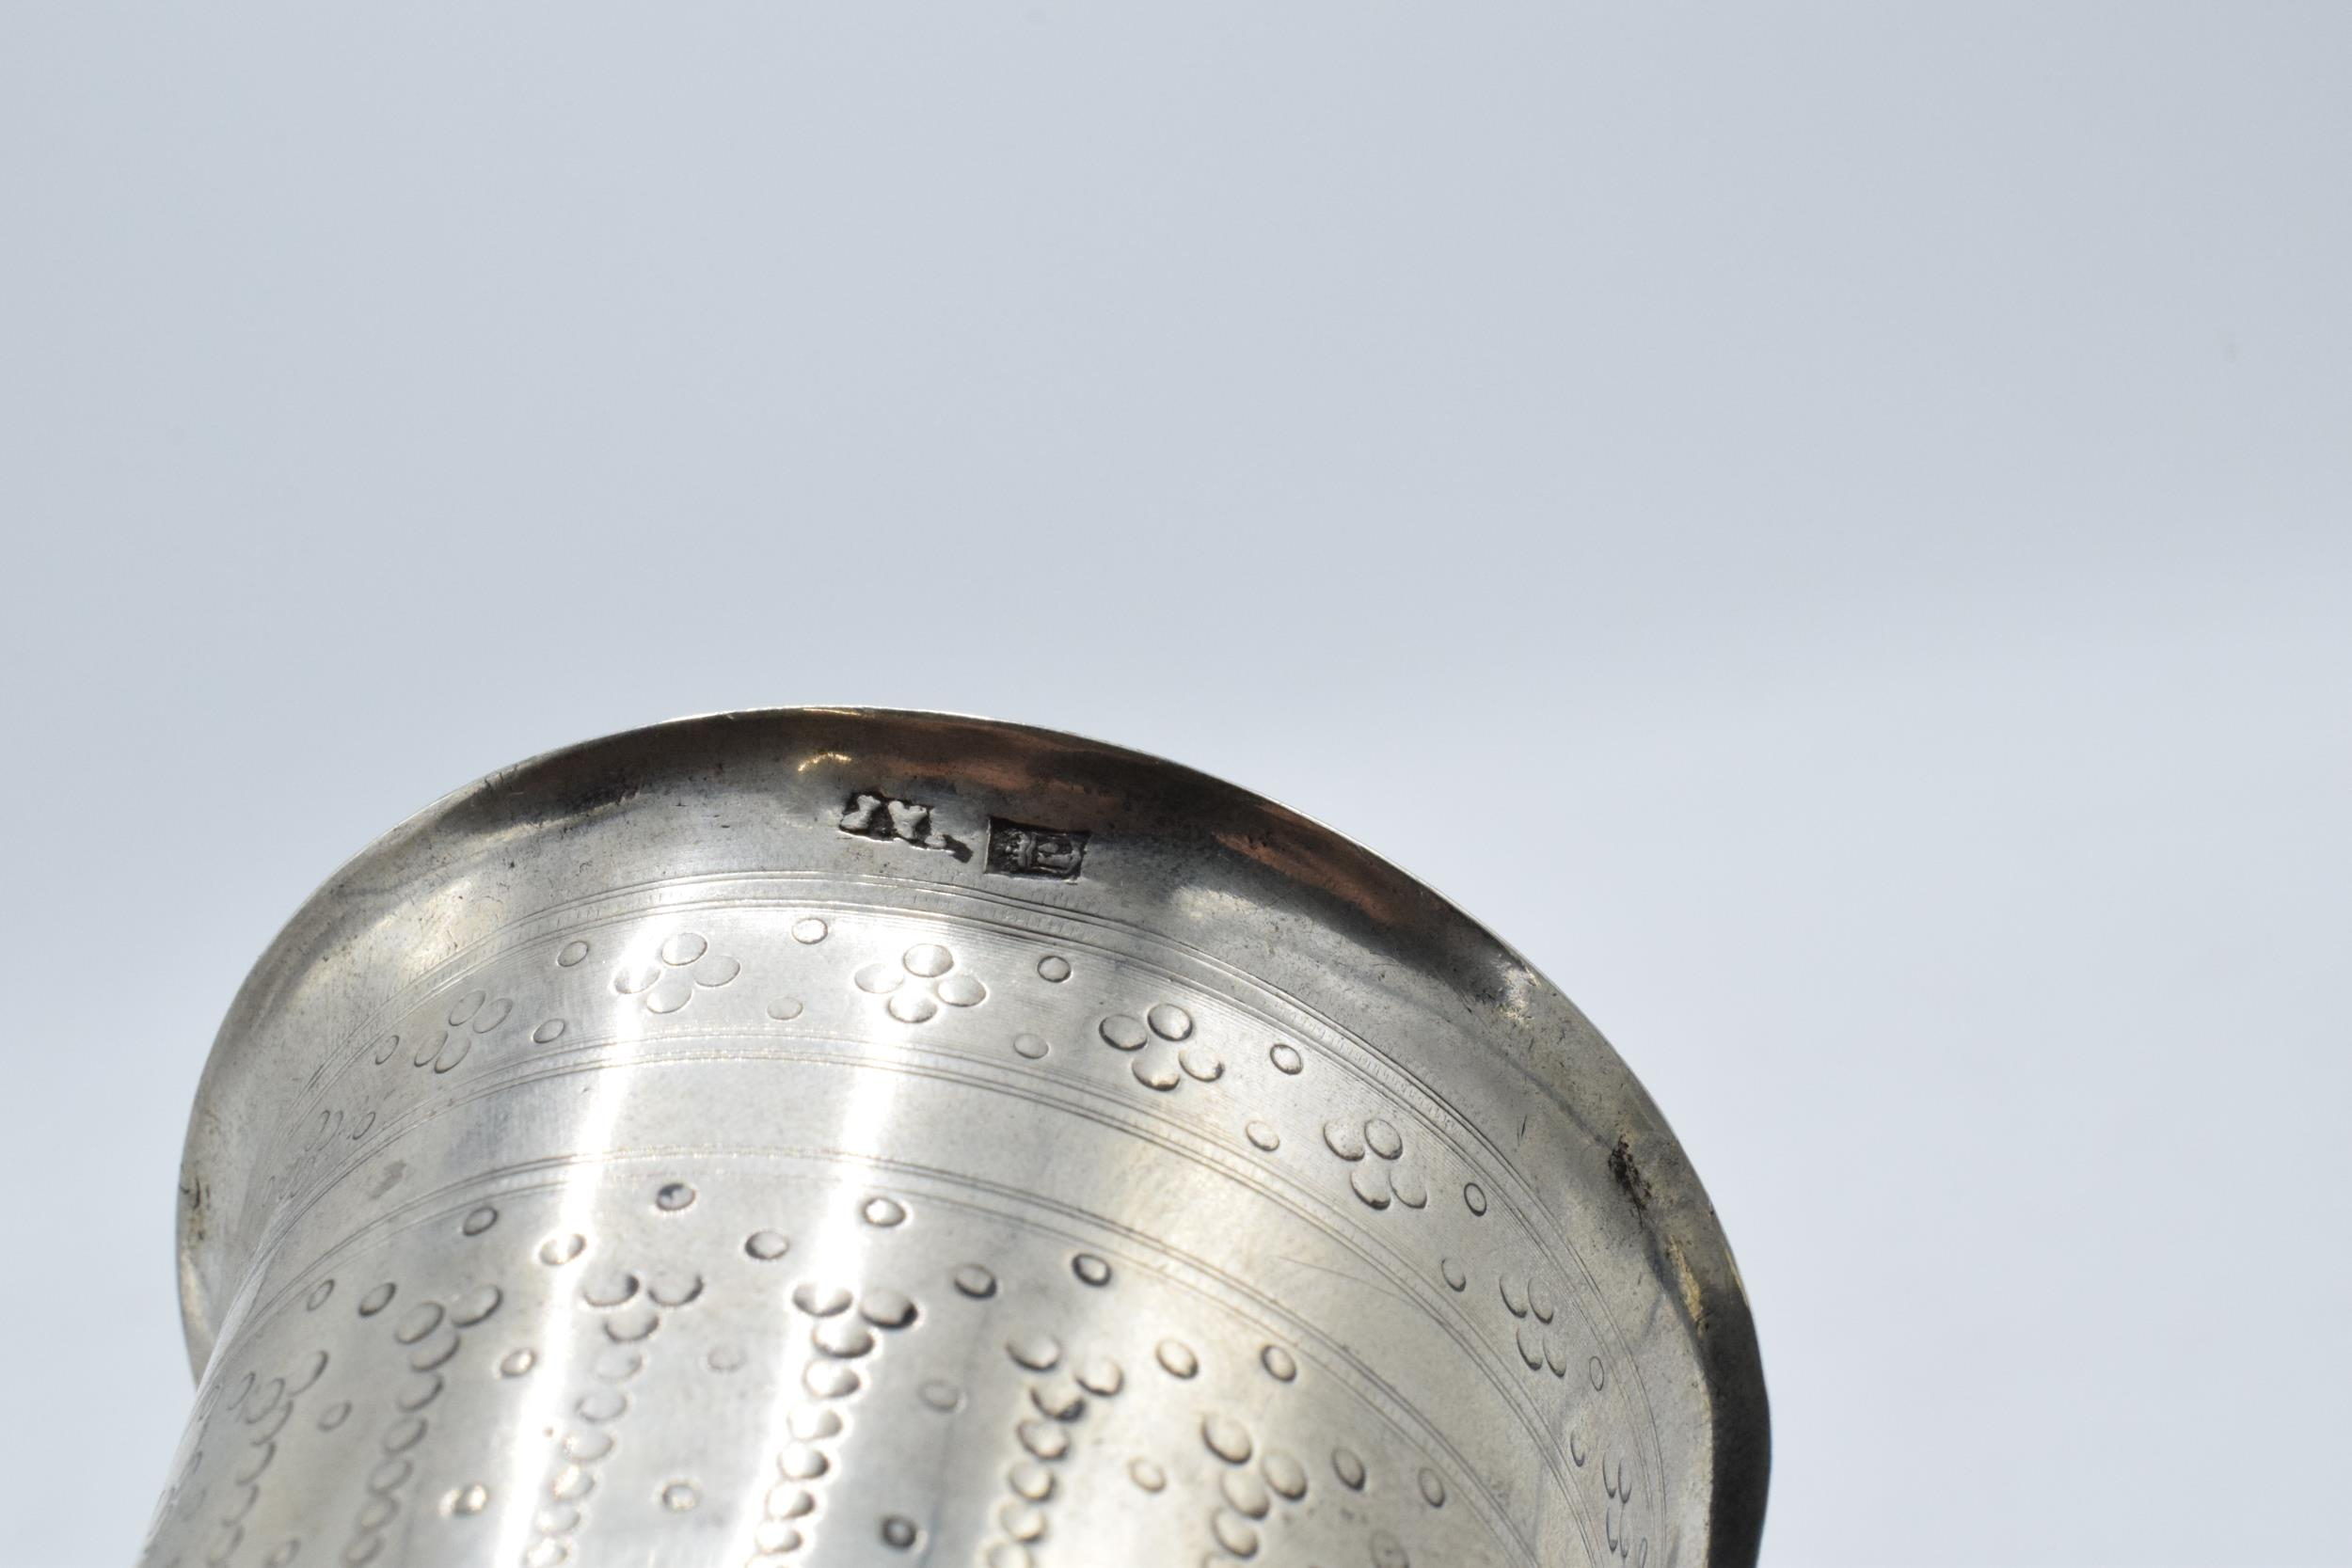 Continental silver footed beaker with engraved decoration. 9cm tall. 63.3 grams. - Image 4 of 5